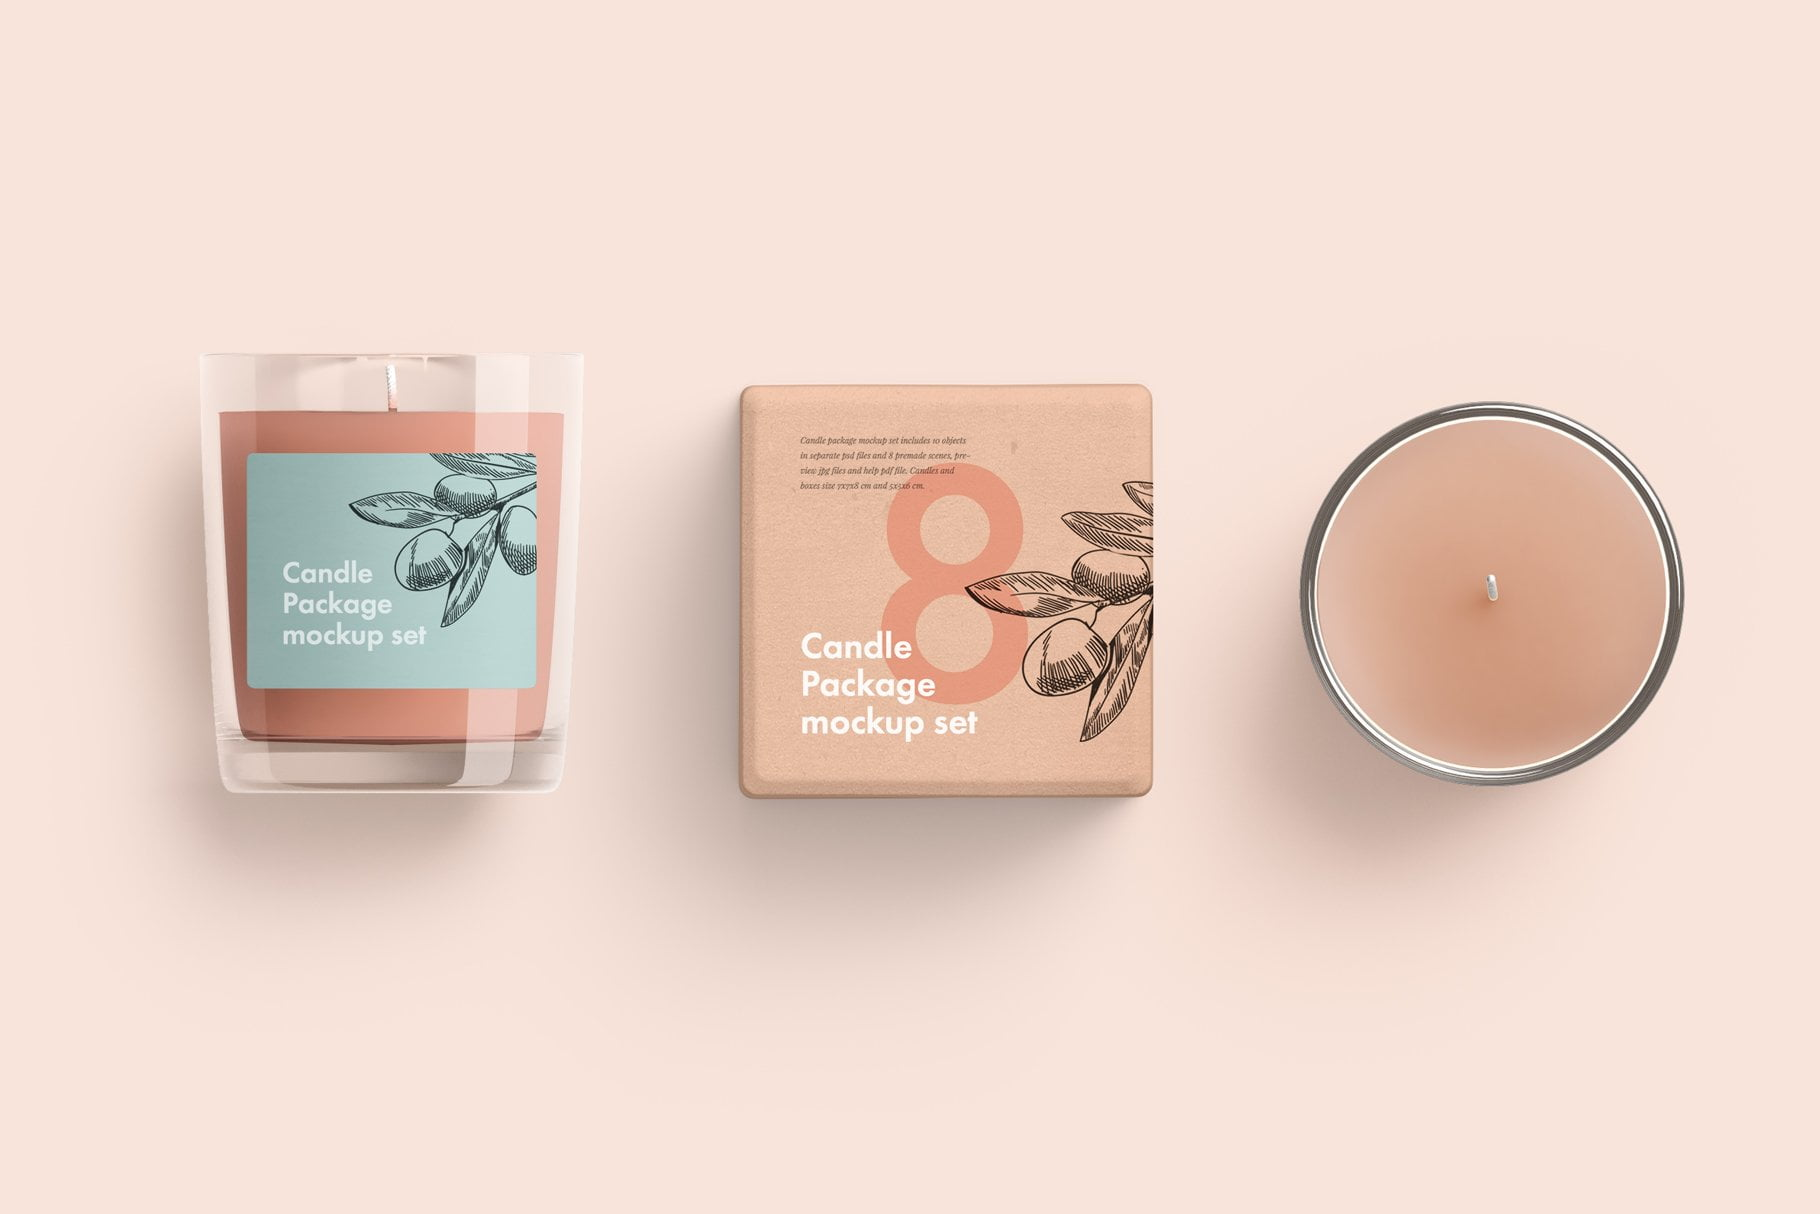 Candle glass and box packaging